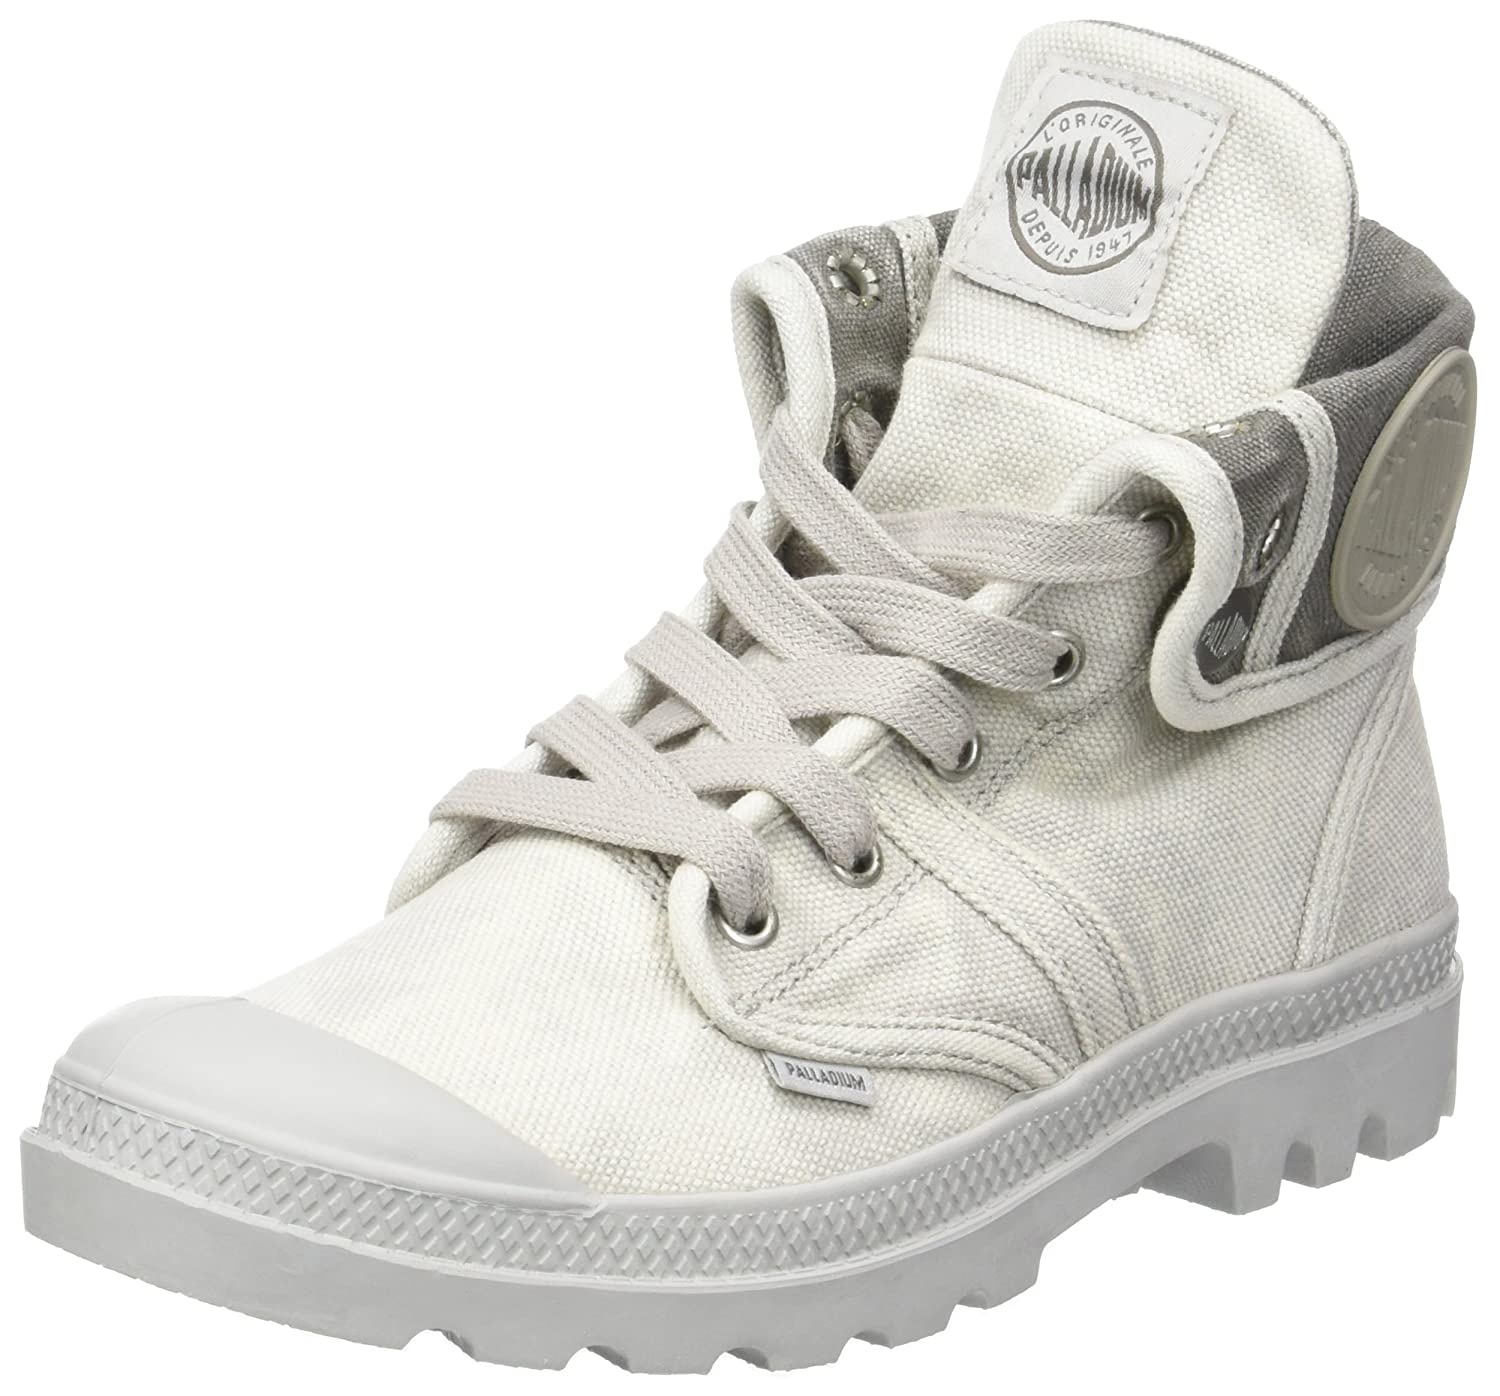 Palladium/ Us Baggy W F, Baskets Hautes F, Femme Palladium Gris (Vapor/ Metal) ac2cb28 - fast-weightloss-diet.space